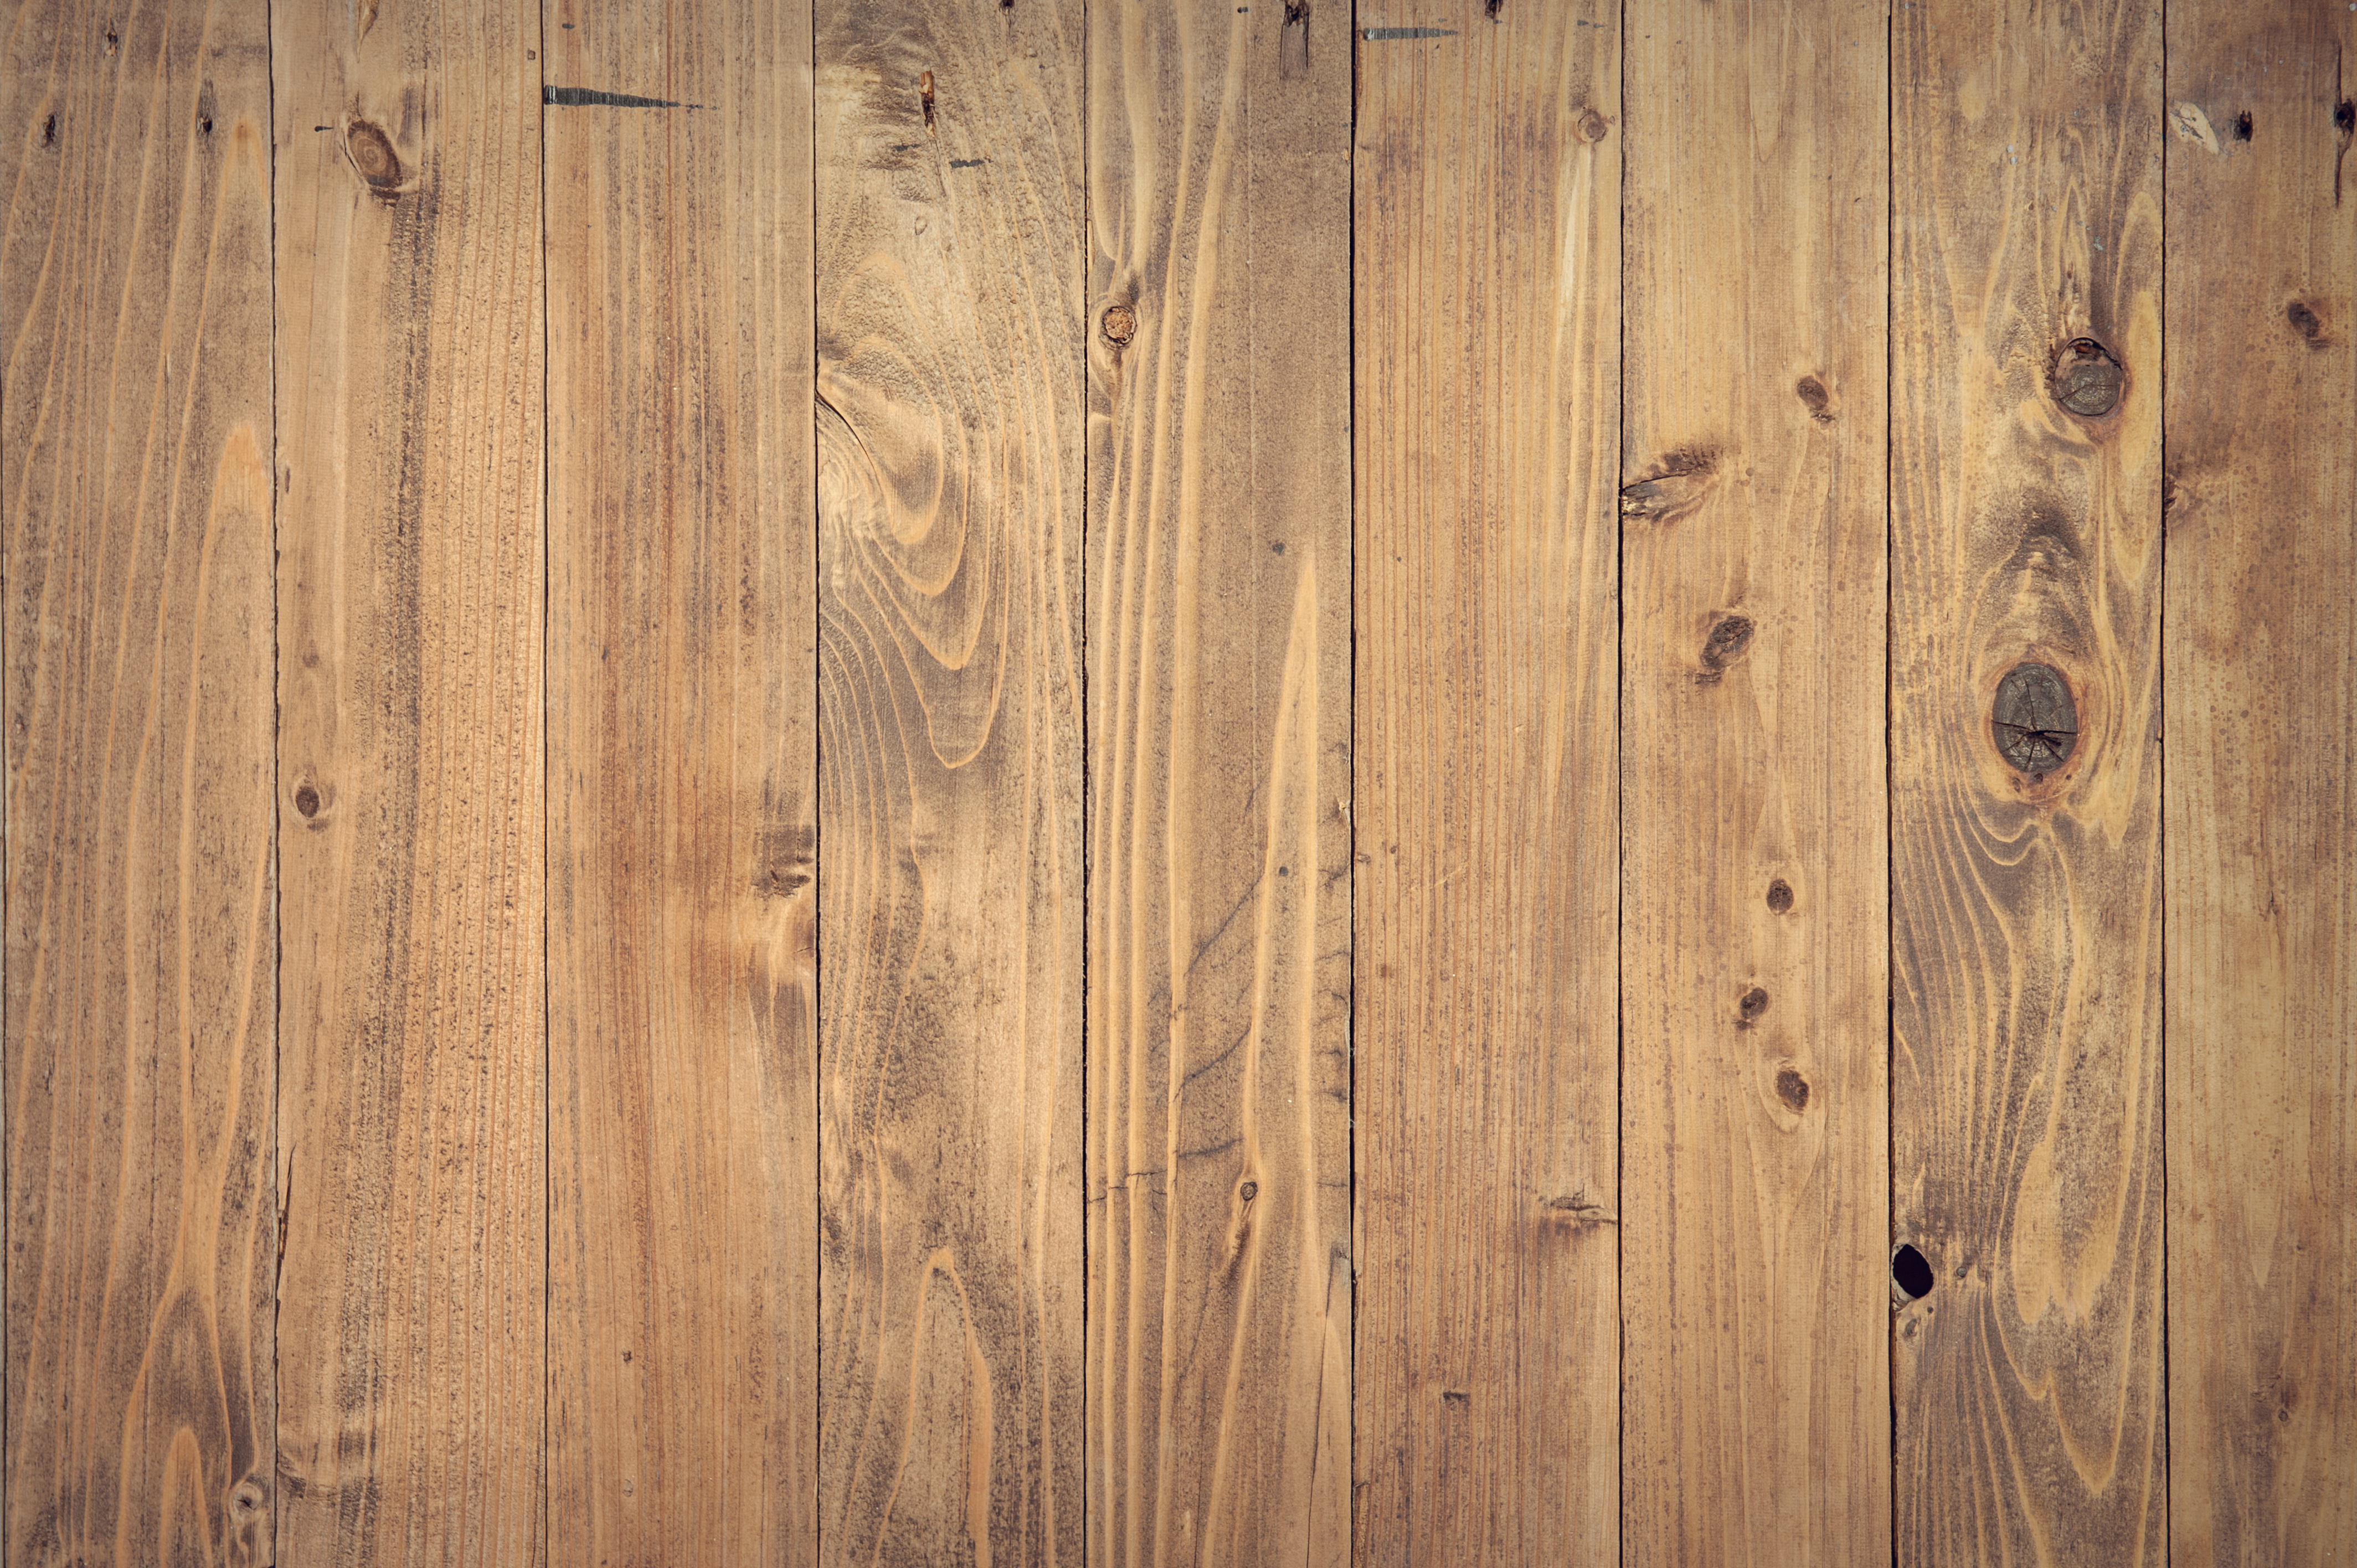 Free Photo Wood Background Woodgrain Structure Wooden